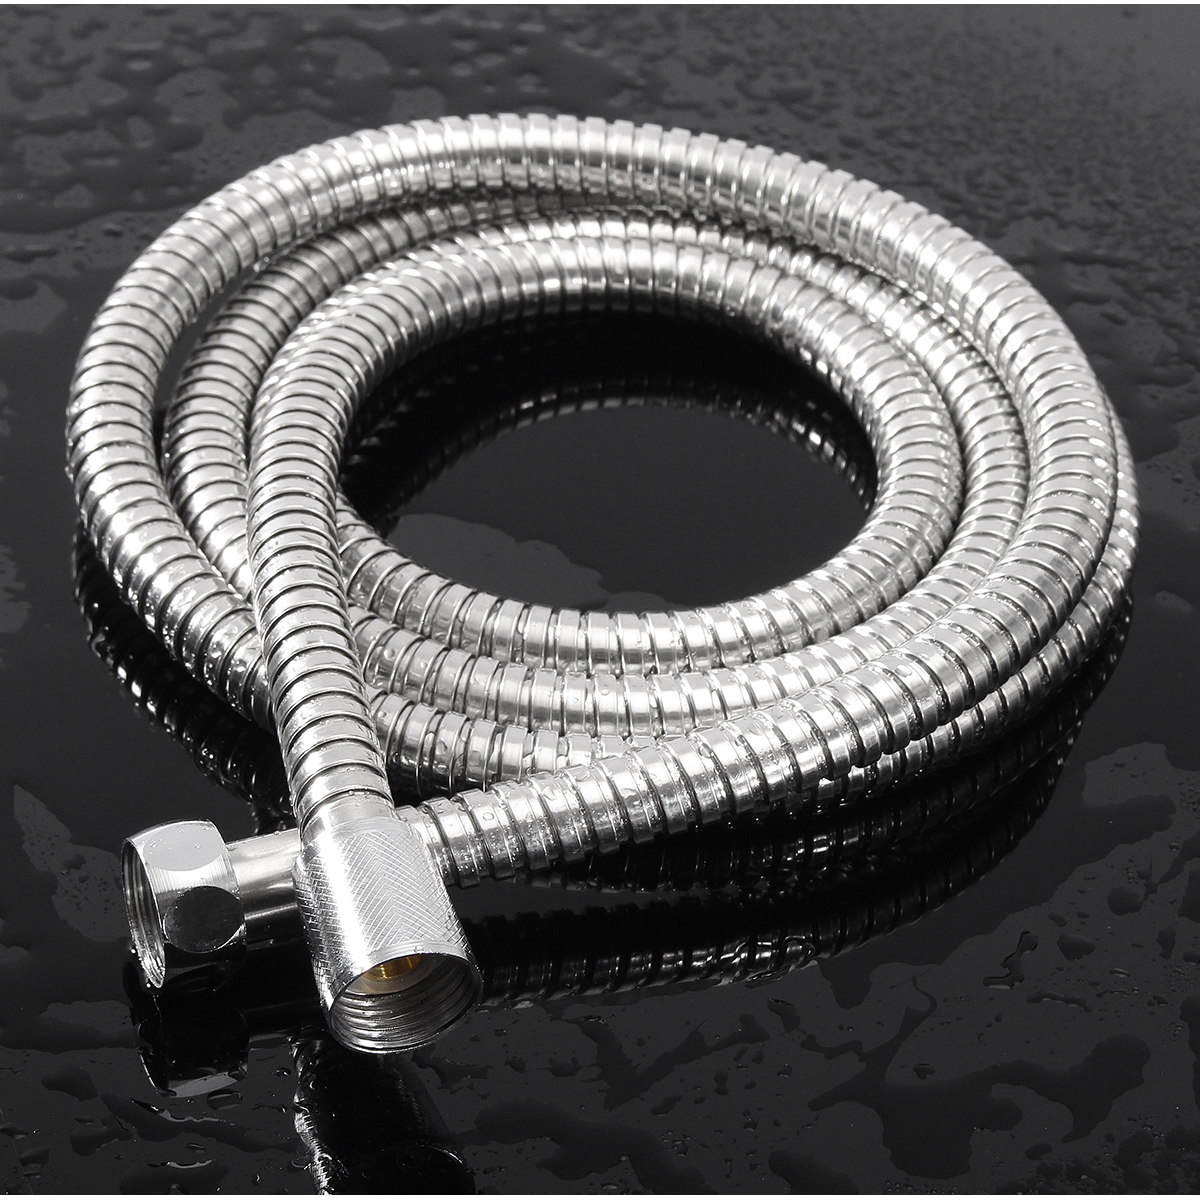 1m/1.5m/2m Stainless Steel Bathroom Flexible Shower Hose Water Head Pipe G1/2 Thread Interface